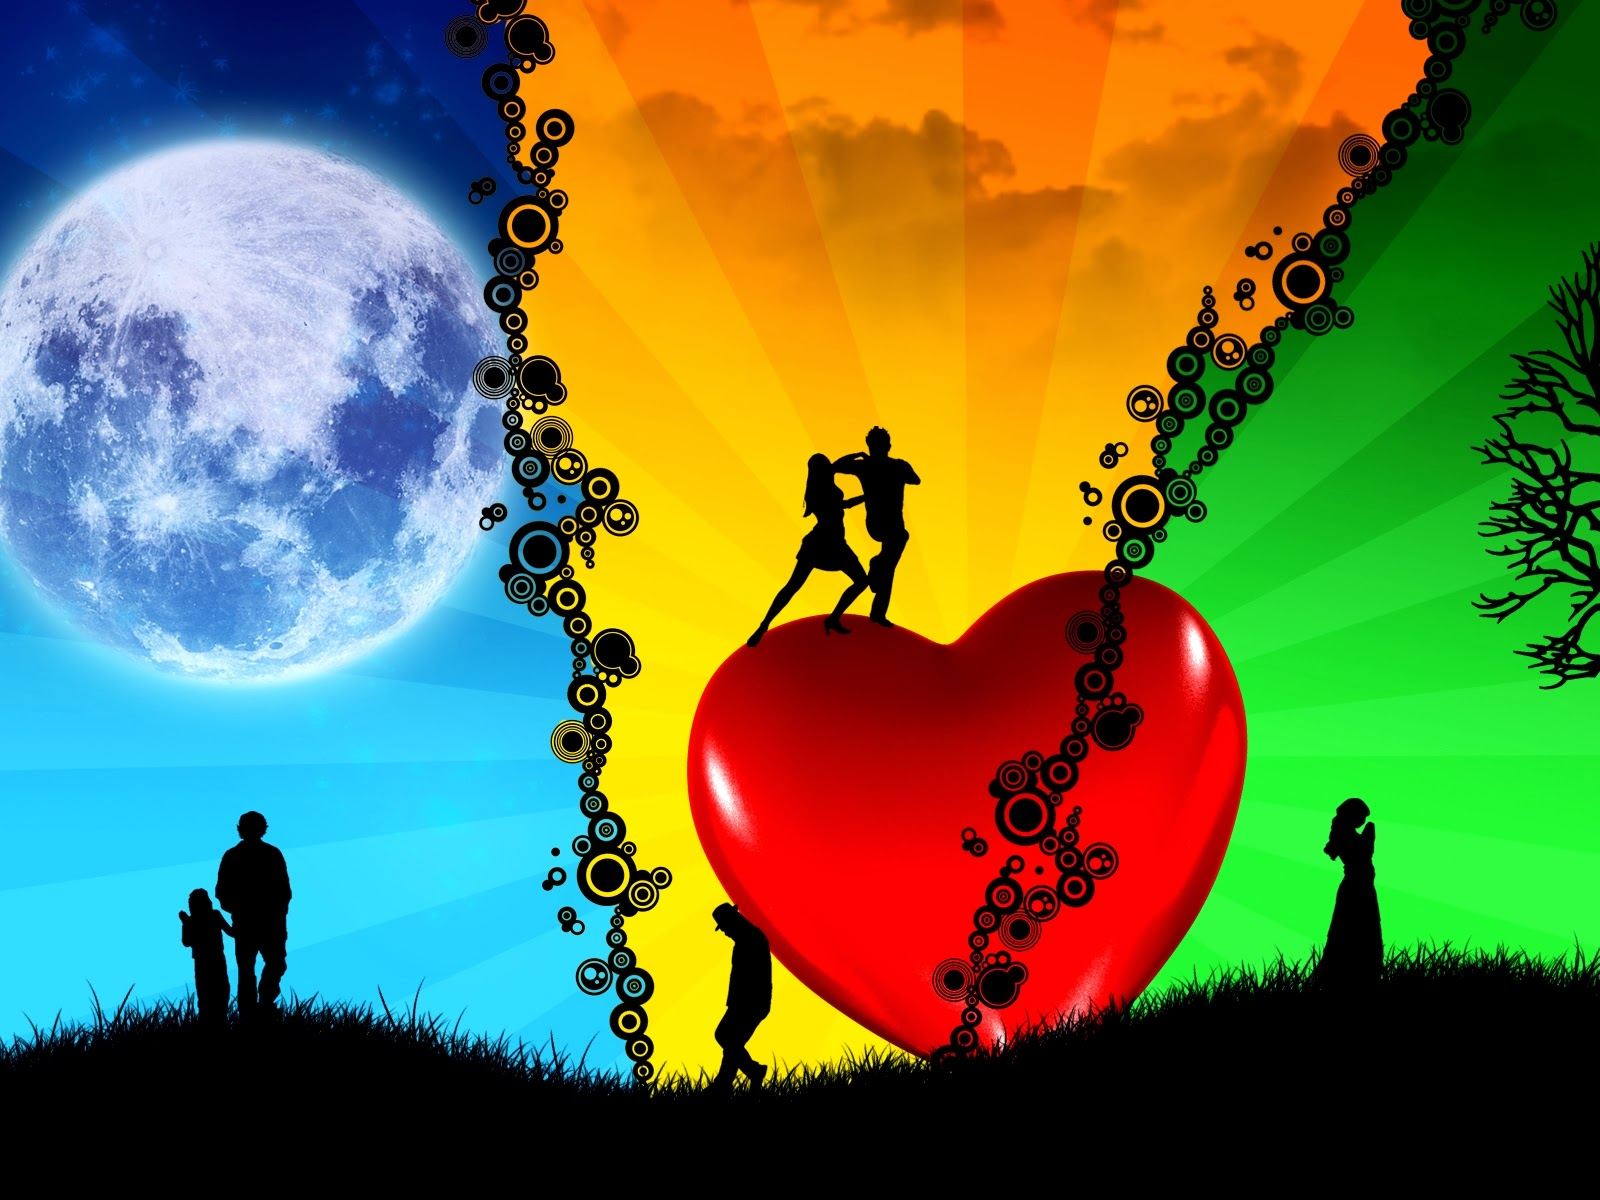 Unique Love Wallpaper Hd : Beautiful Love Wallpapers Free Download ~ Unique Wallpapers